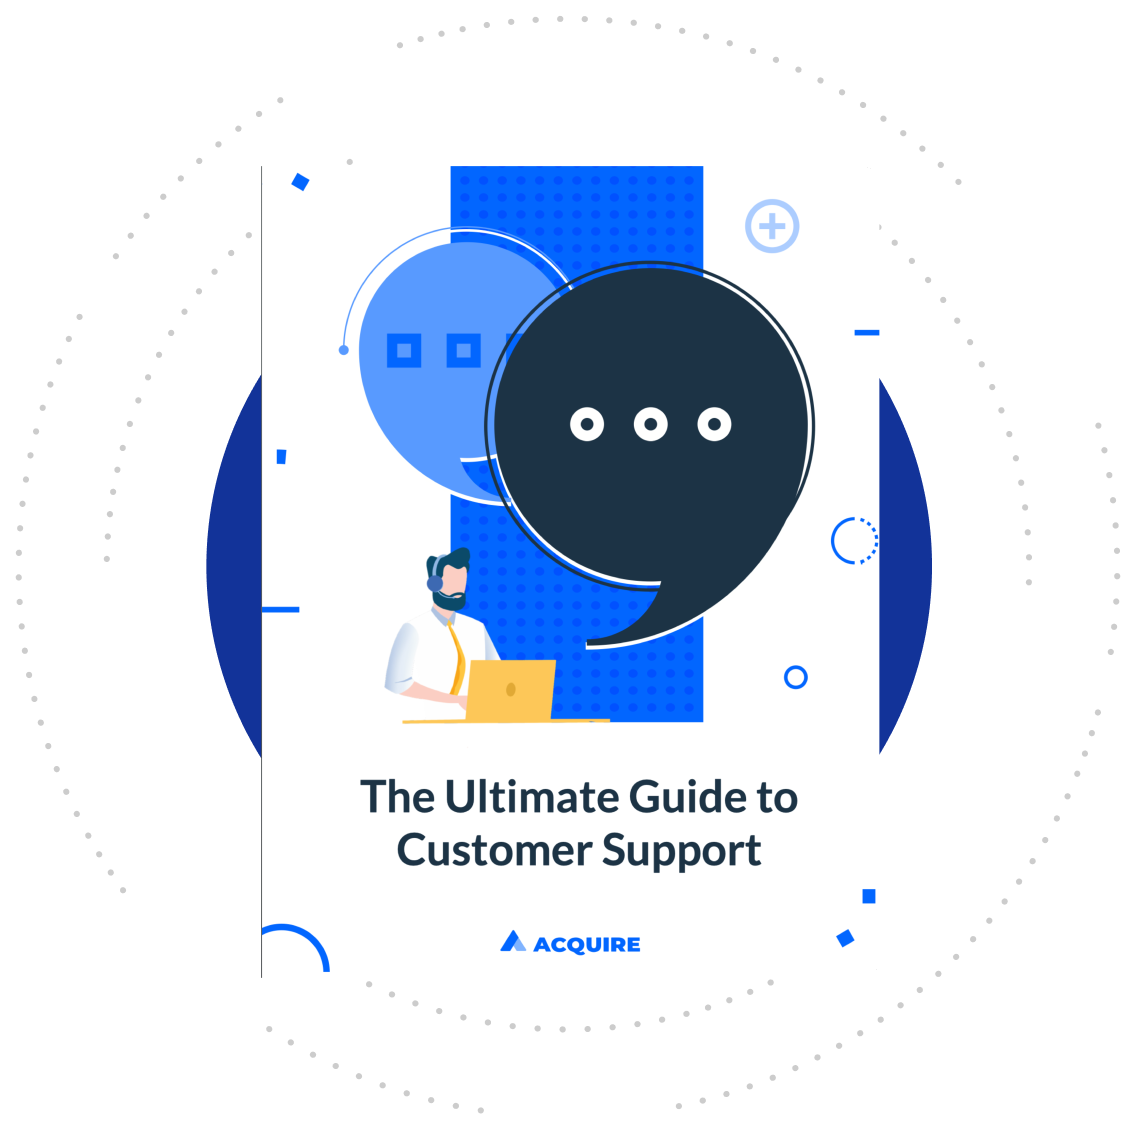 The ultimate guide to customer support whitepaper